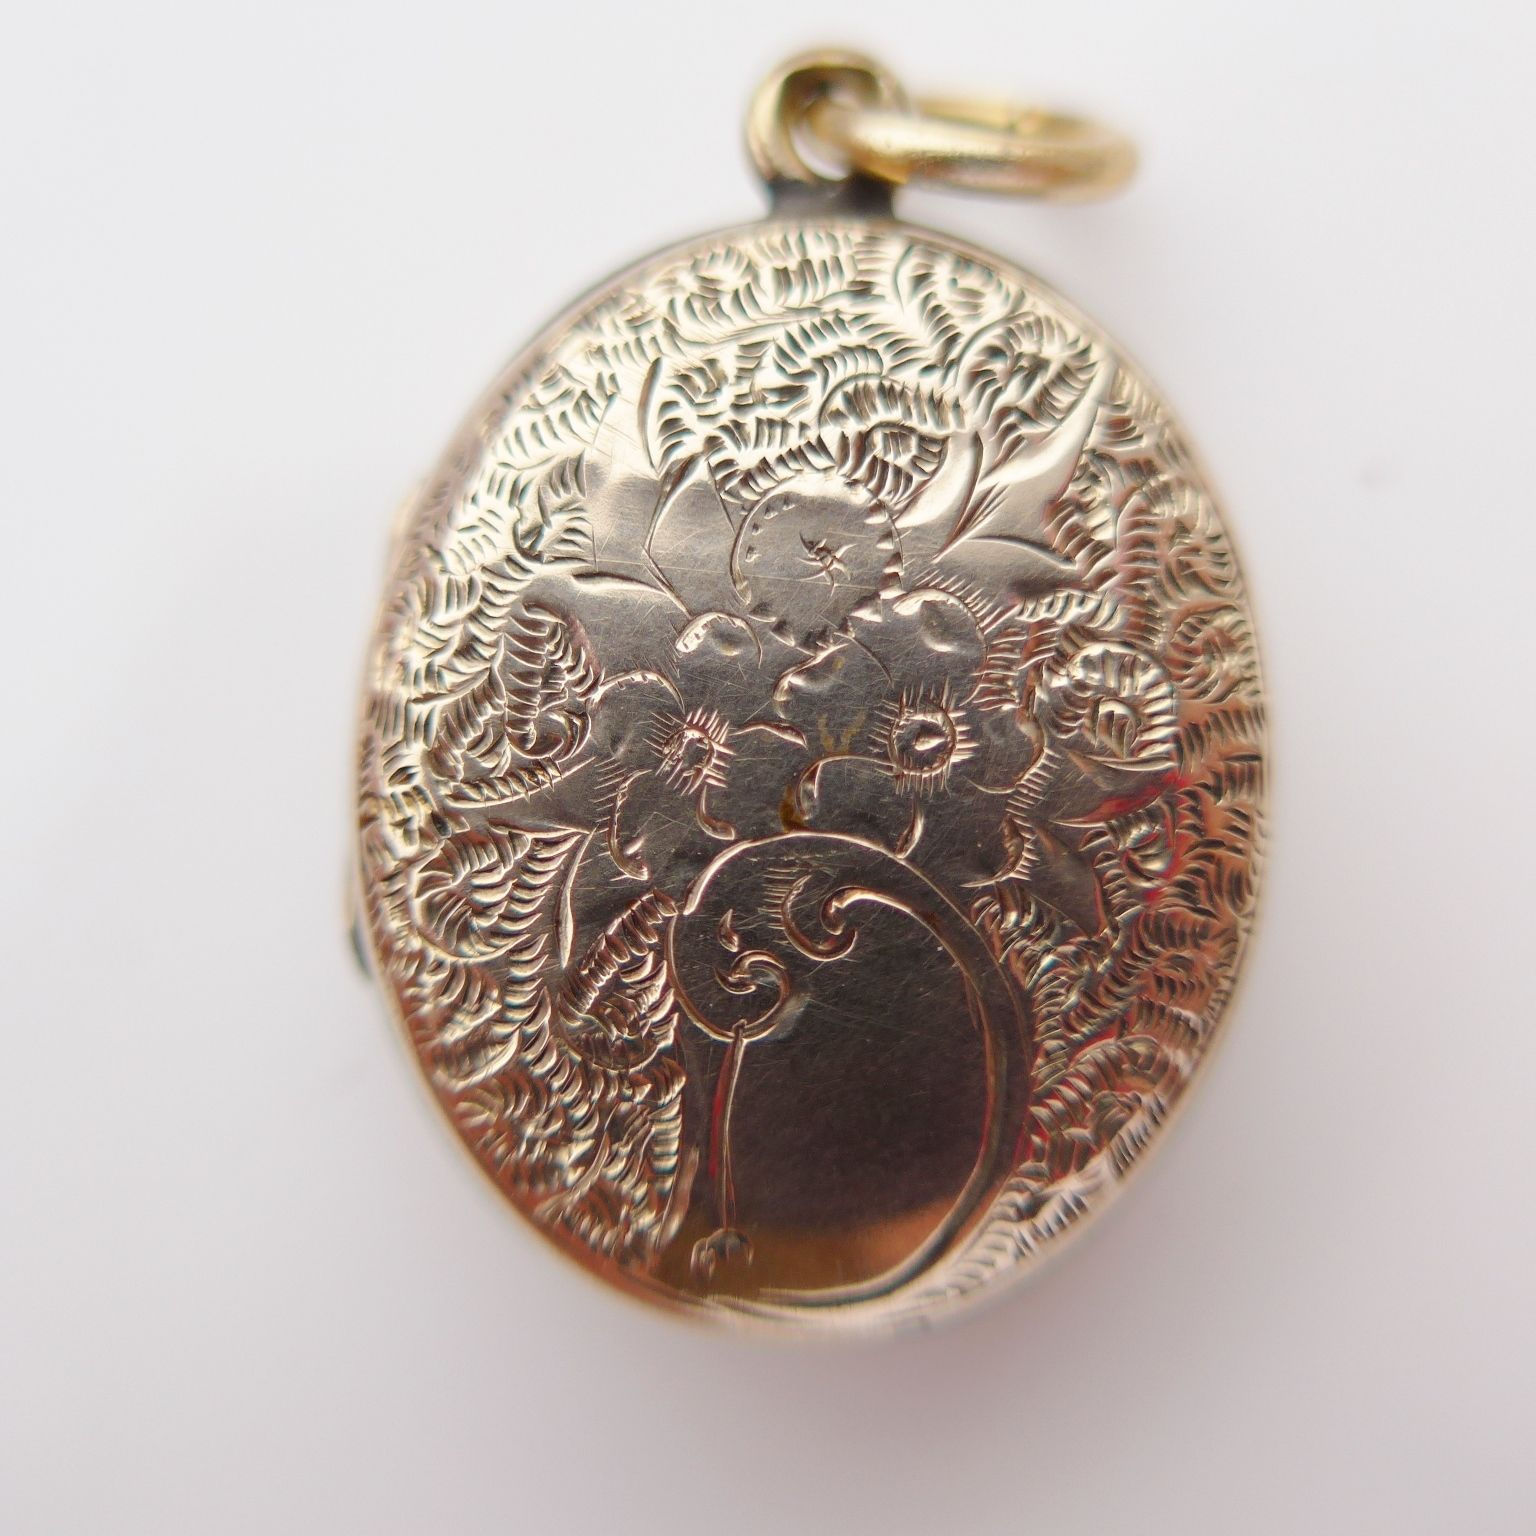 extra grosses lockets p silber silver metal de schmuckwerk shop mattiert large medaillon